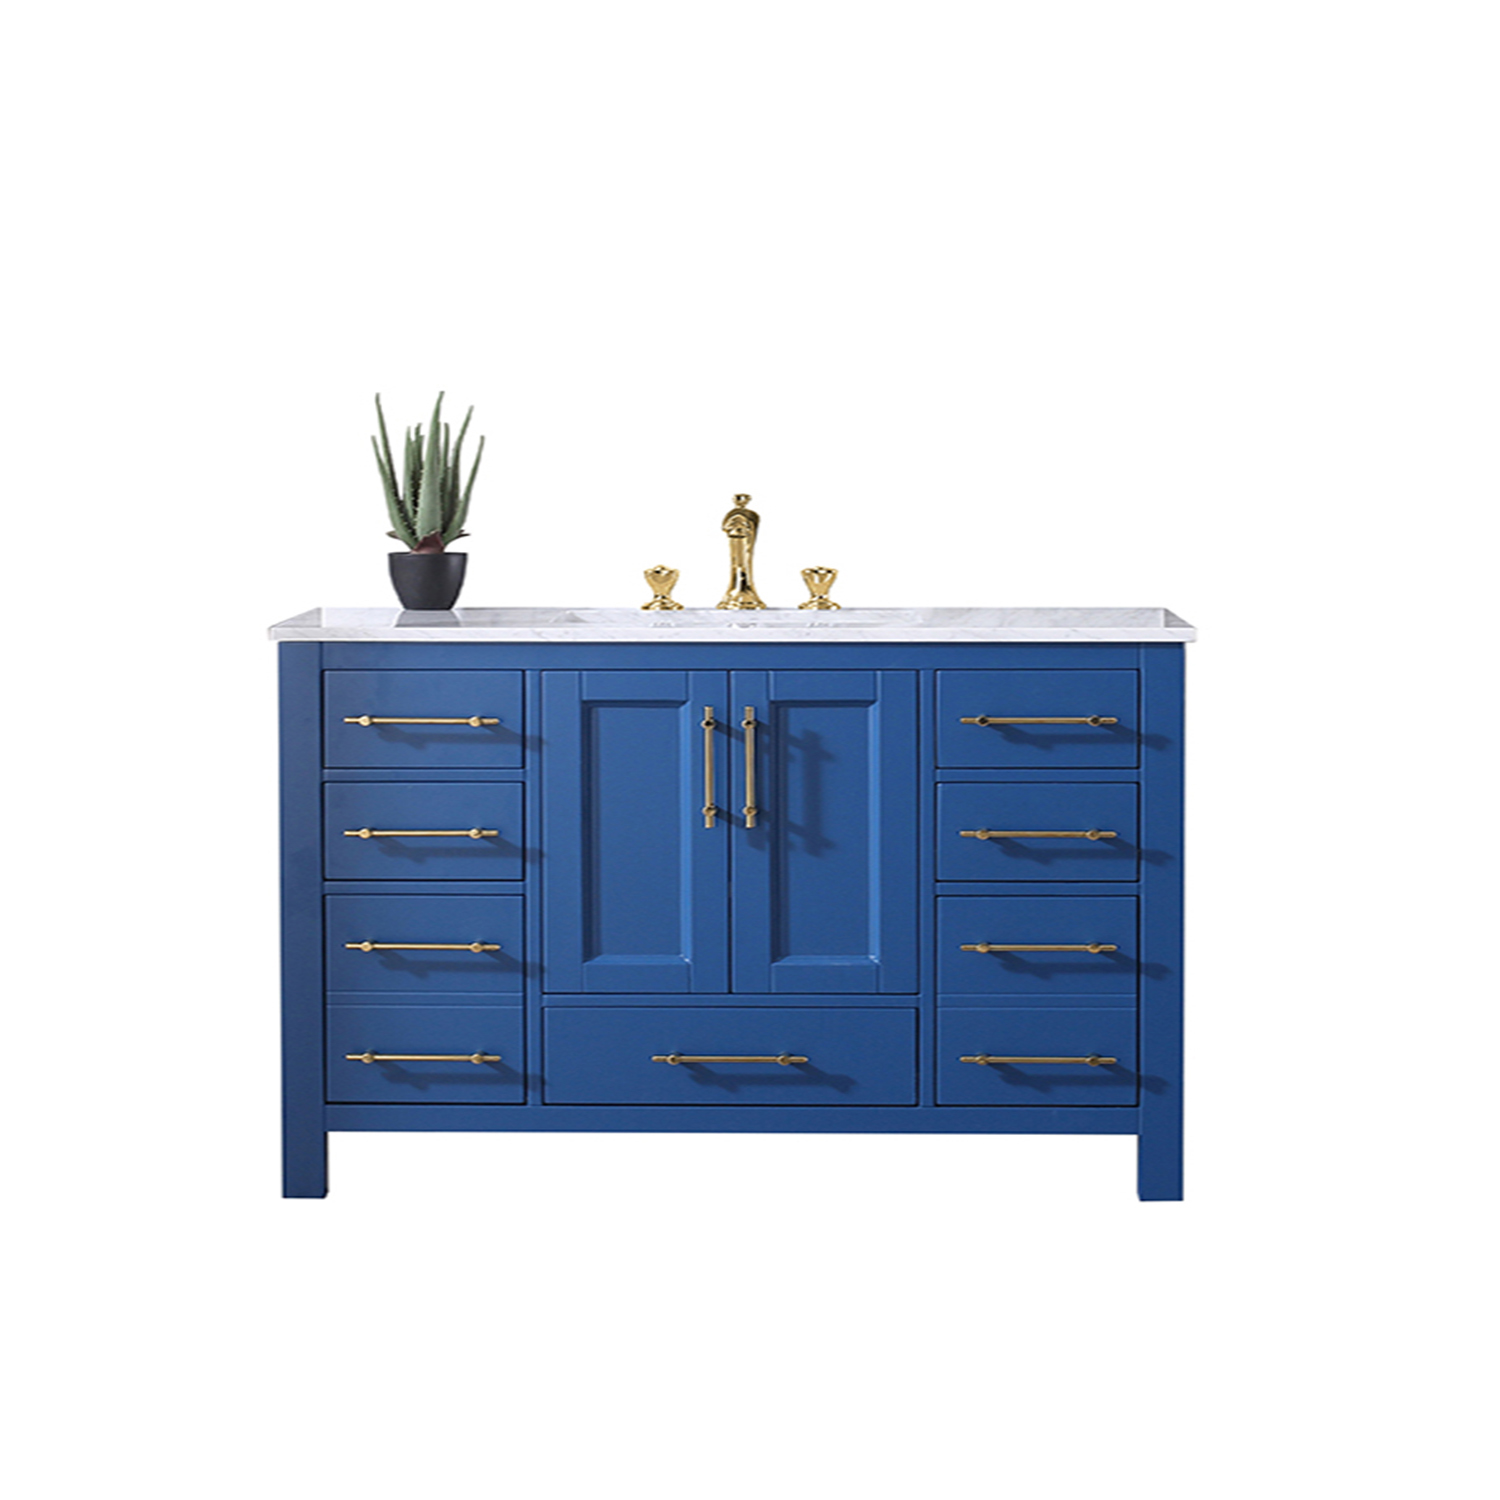 EVVN413 48BLU A Main - Eviva Navy 48 inch Deep Blue Bathroom Vanity with White Carrera Counter-top and White Undermount Porcelain Sink